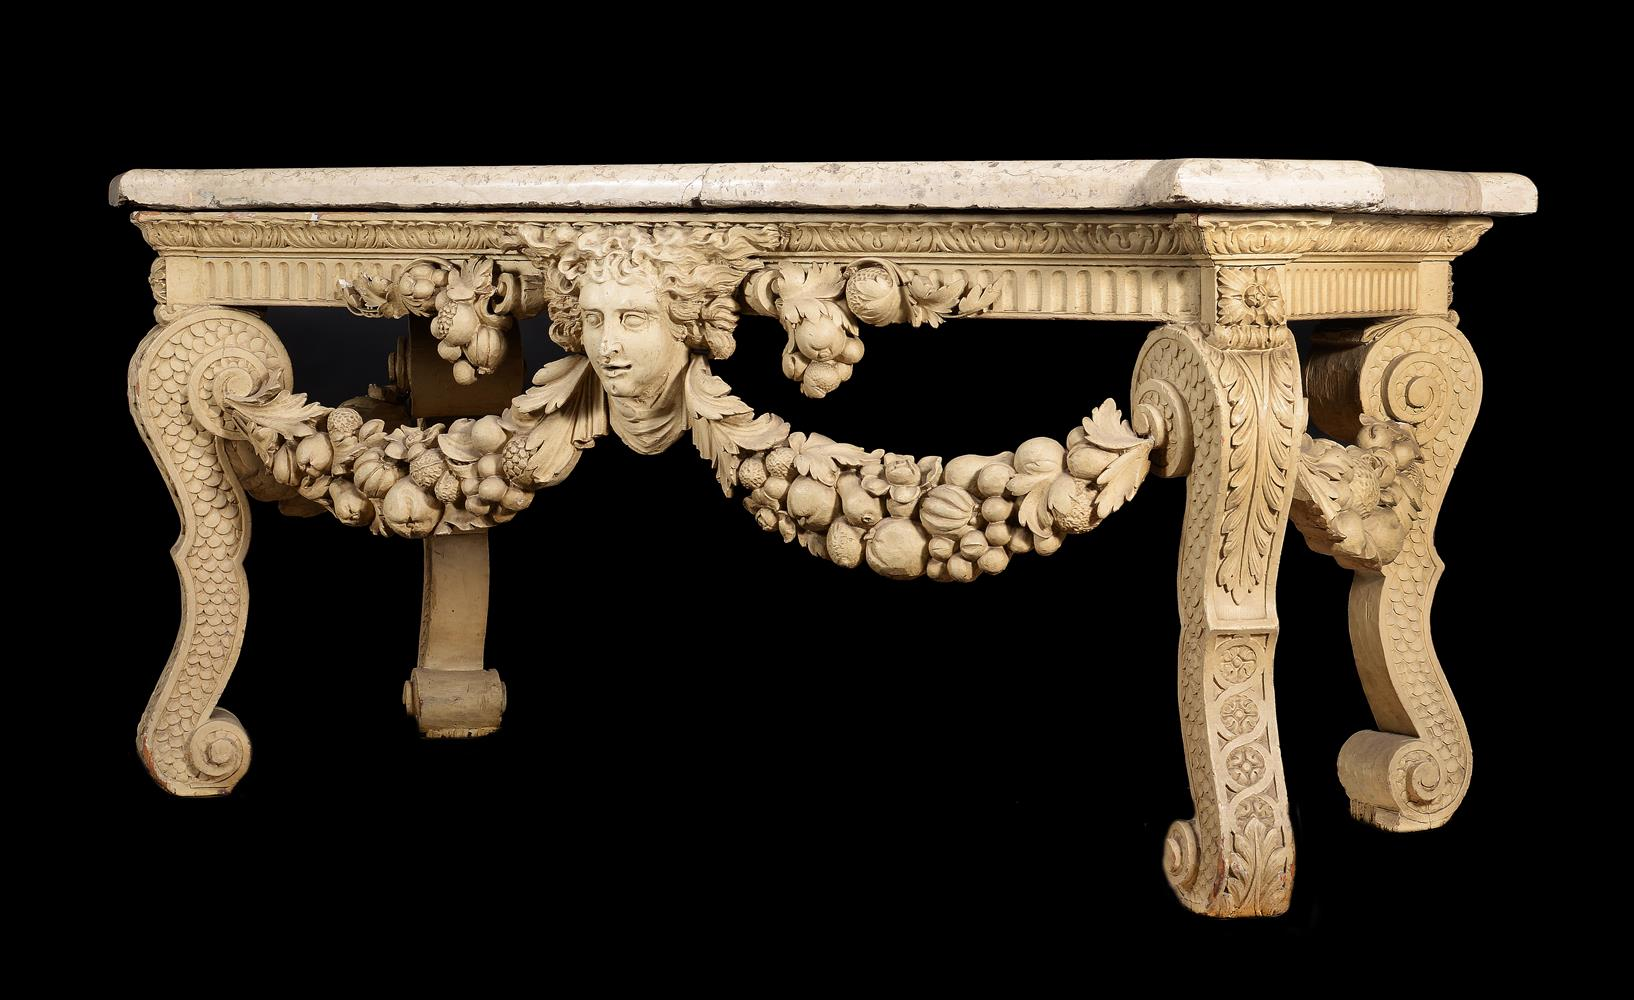 A CREAM PAINTED CARVED WOOD CONSOLE TABLE, IN THE MANNER OF WILLIAM KENT - Image 2 of 9